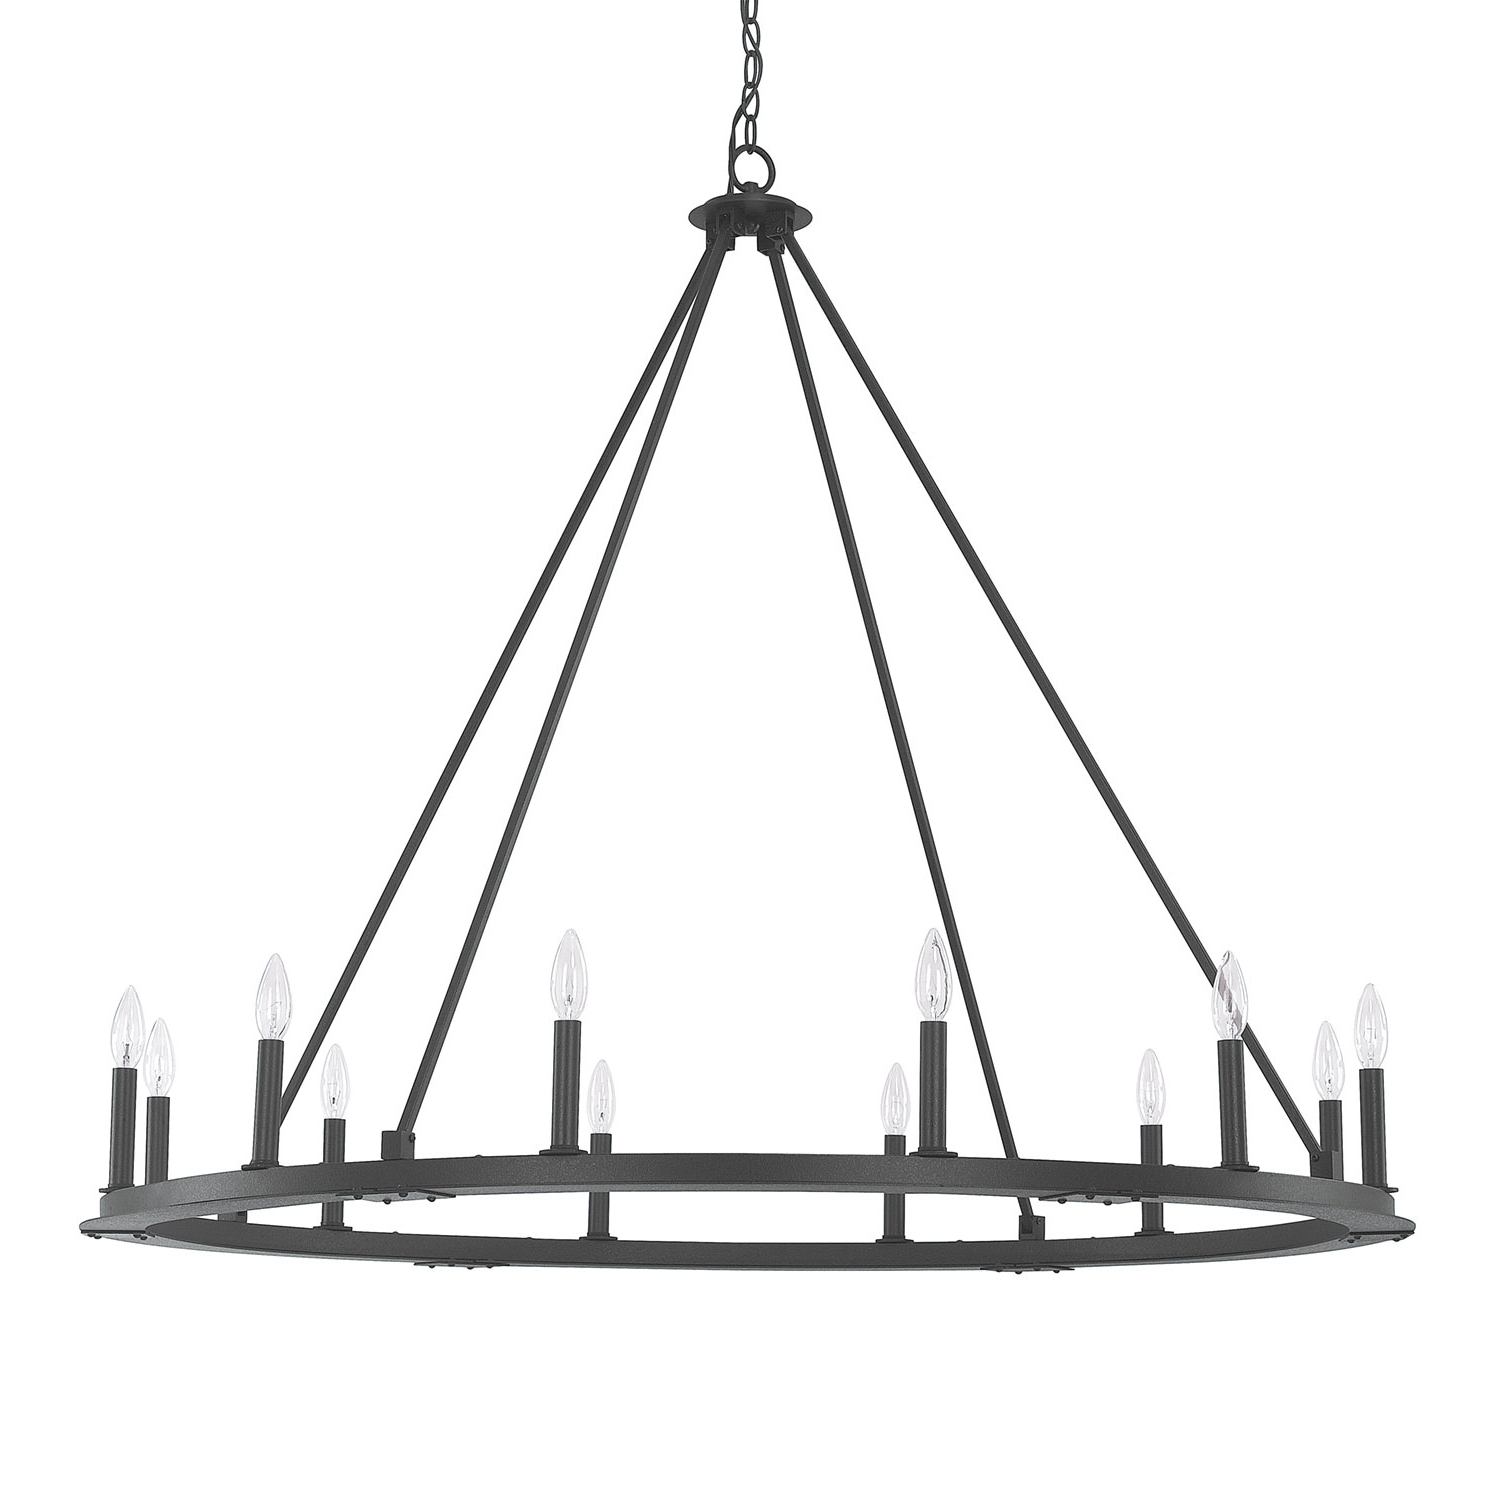 Widely Used Capital Lighting Fixture Company Pearson Black Iron Twelve Light With Regard To Black Iron Chandeliers (View 3 of 15)